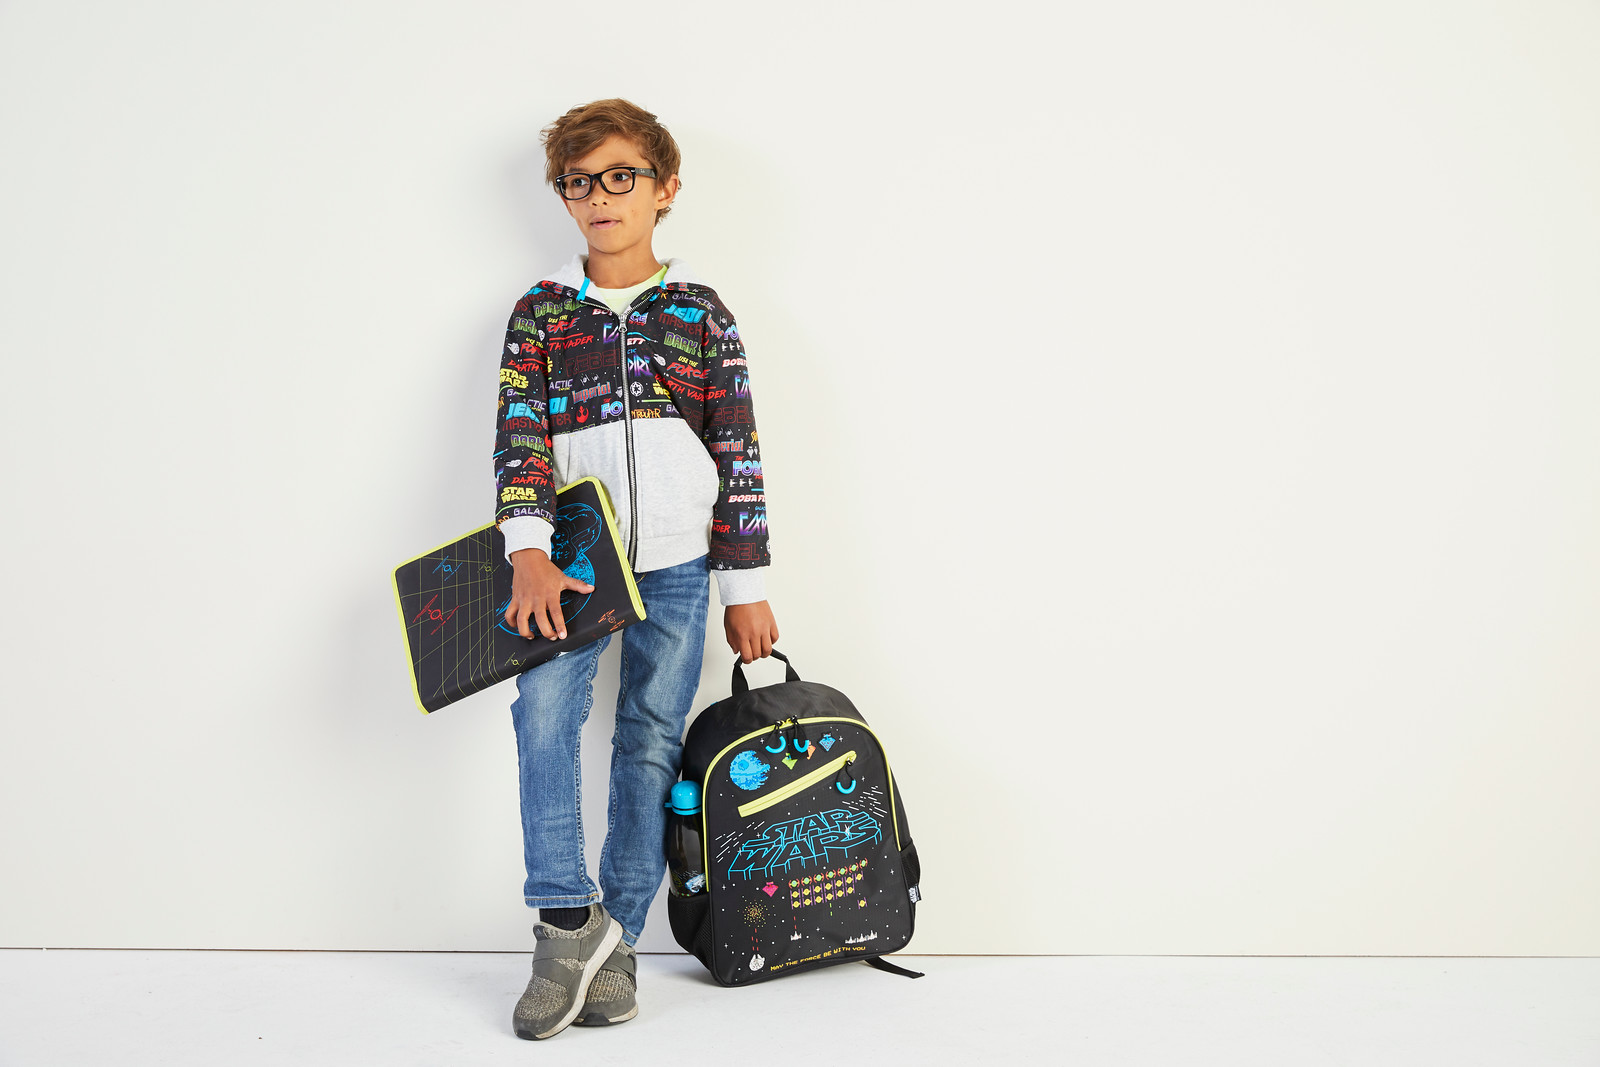 fdf8c679286 ... go with this backpack inspired by PIXAR s Inside Out. The colorful  allover print features all the emotional stars from the movie